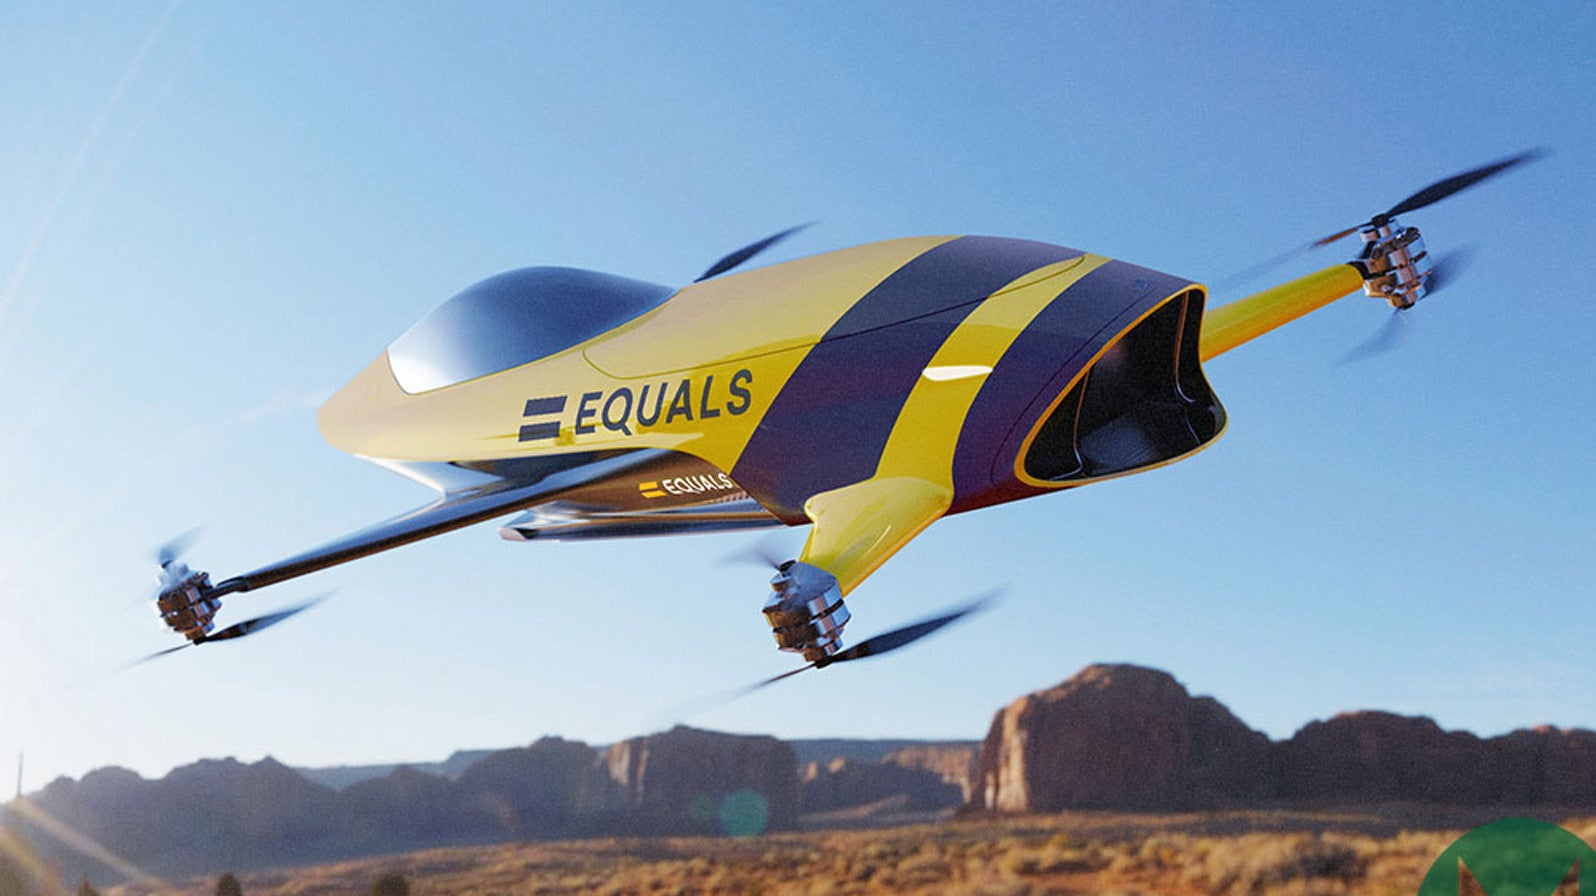 Airspeeder Wants To Reinvent Racing With Single-Seat Flying Electric Cars